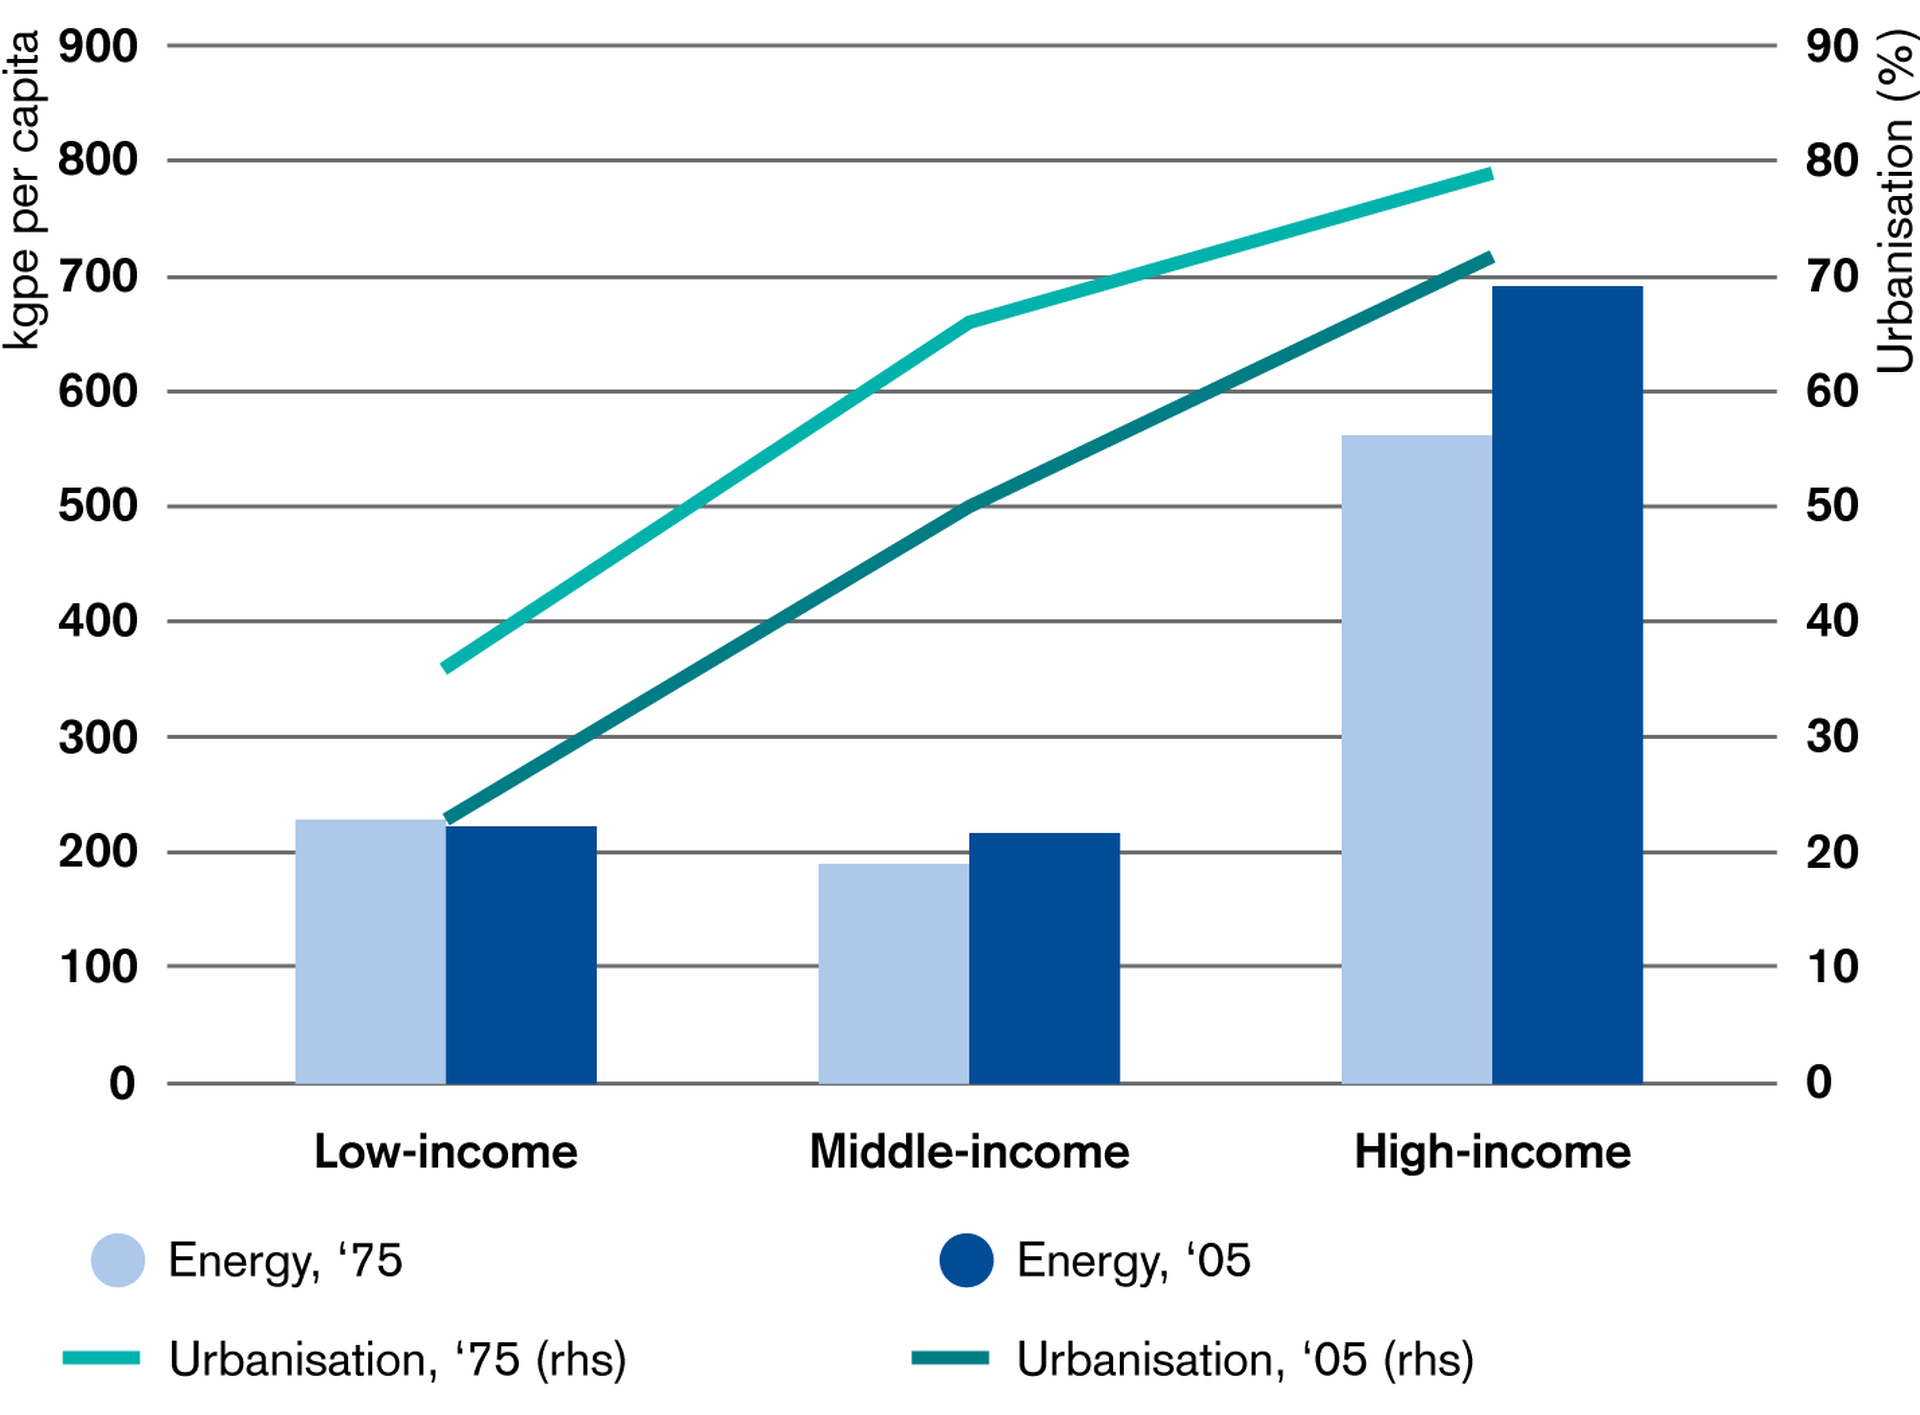 Energy Consumption increases with urbanization and income levels